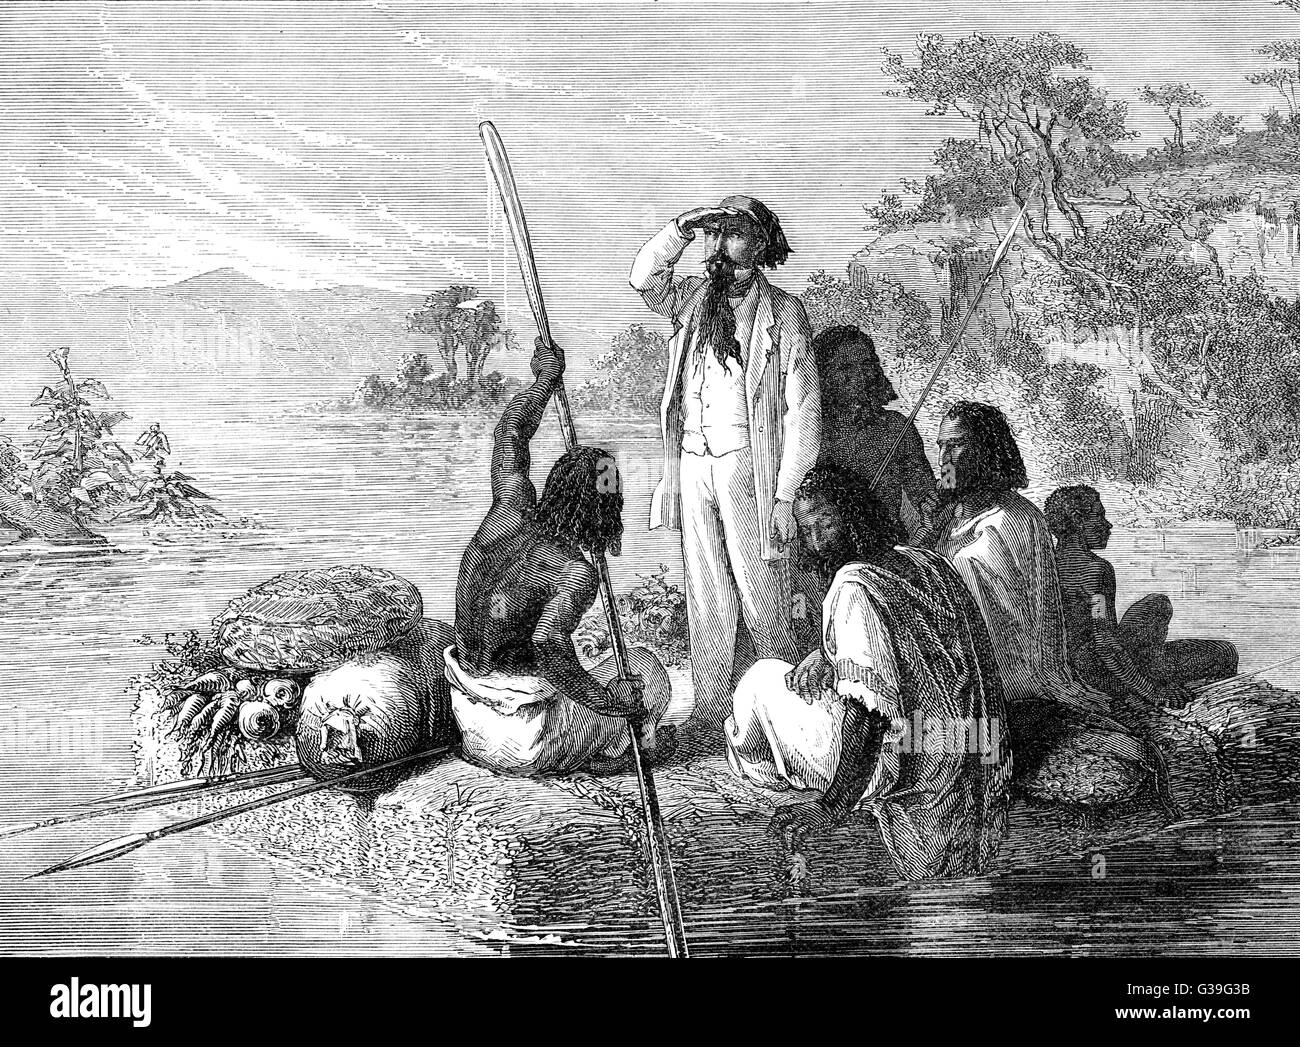 Lejean (1818-1872) accompanied  by locals on a raft, looks out  over an Abyssinian river - Stock Image